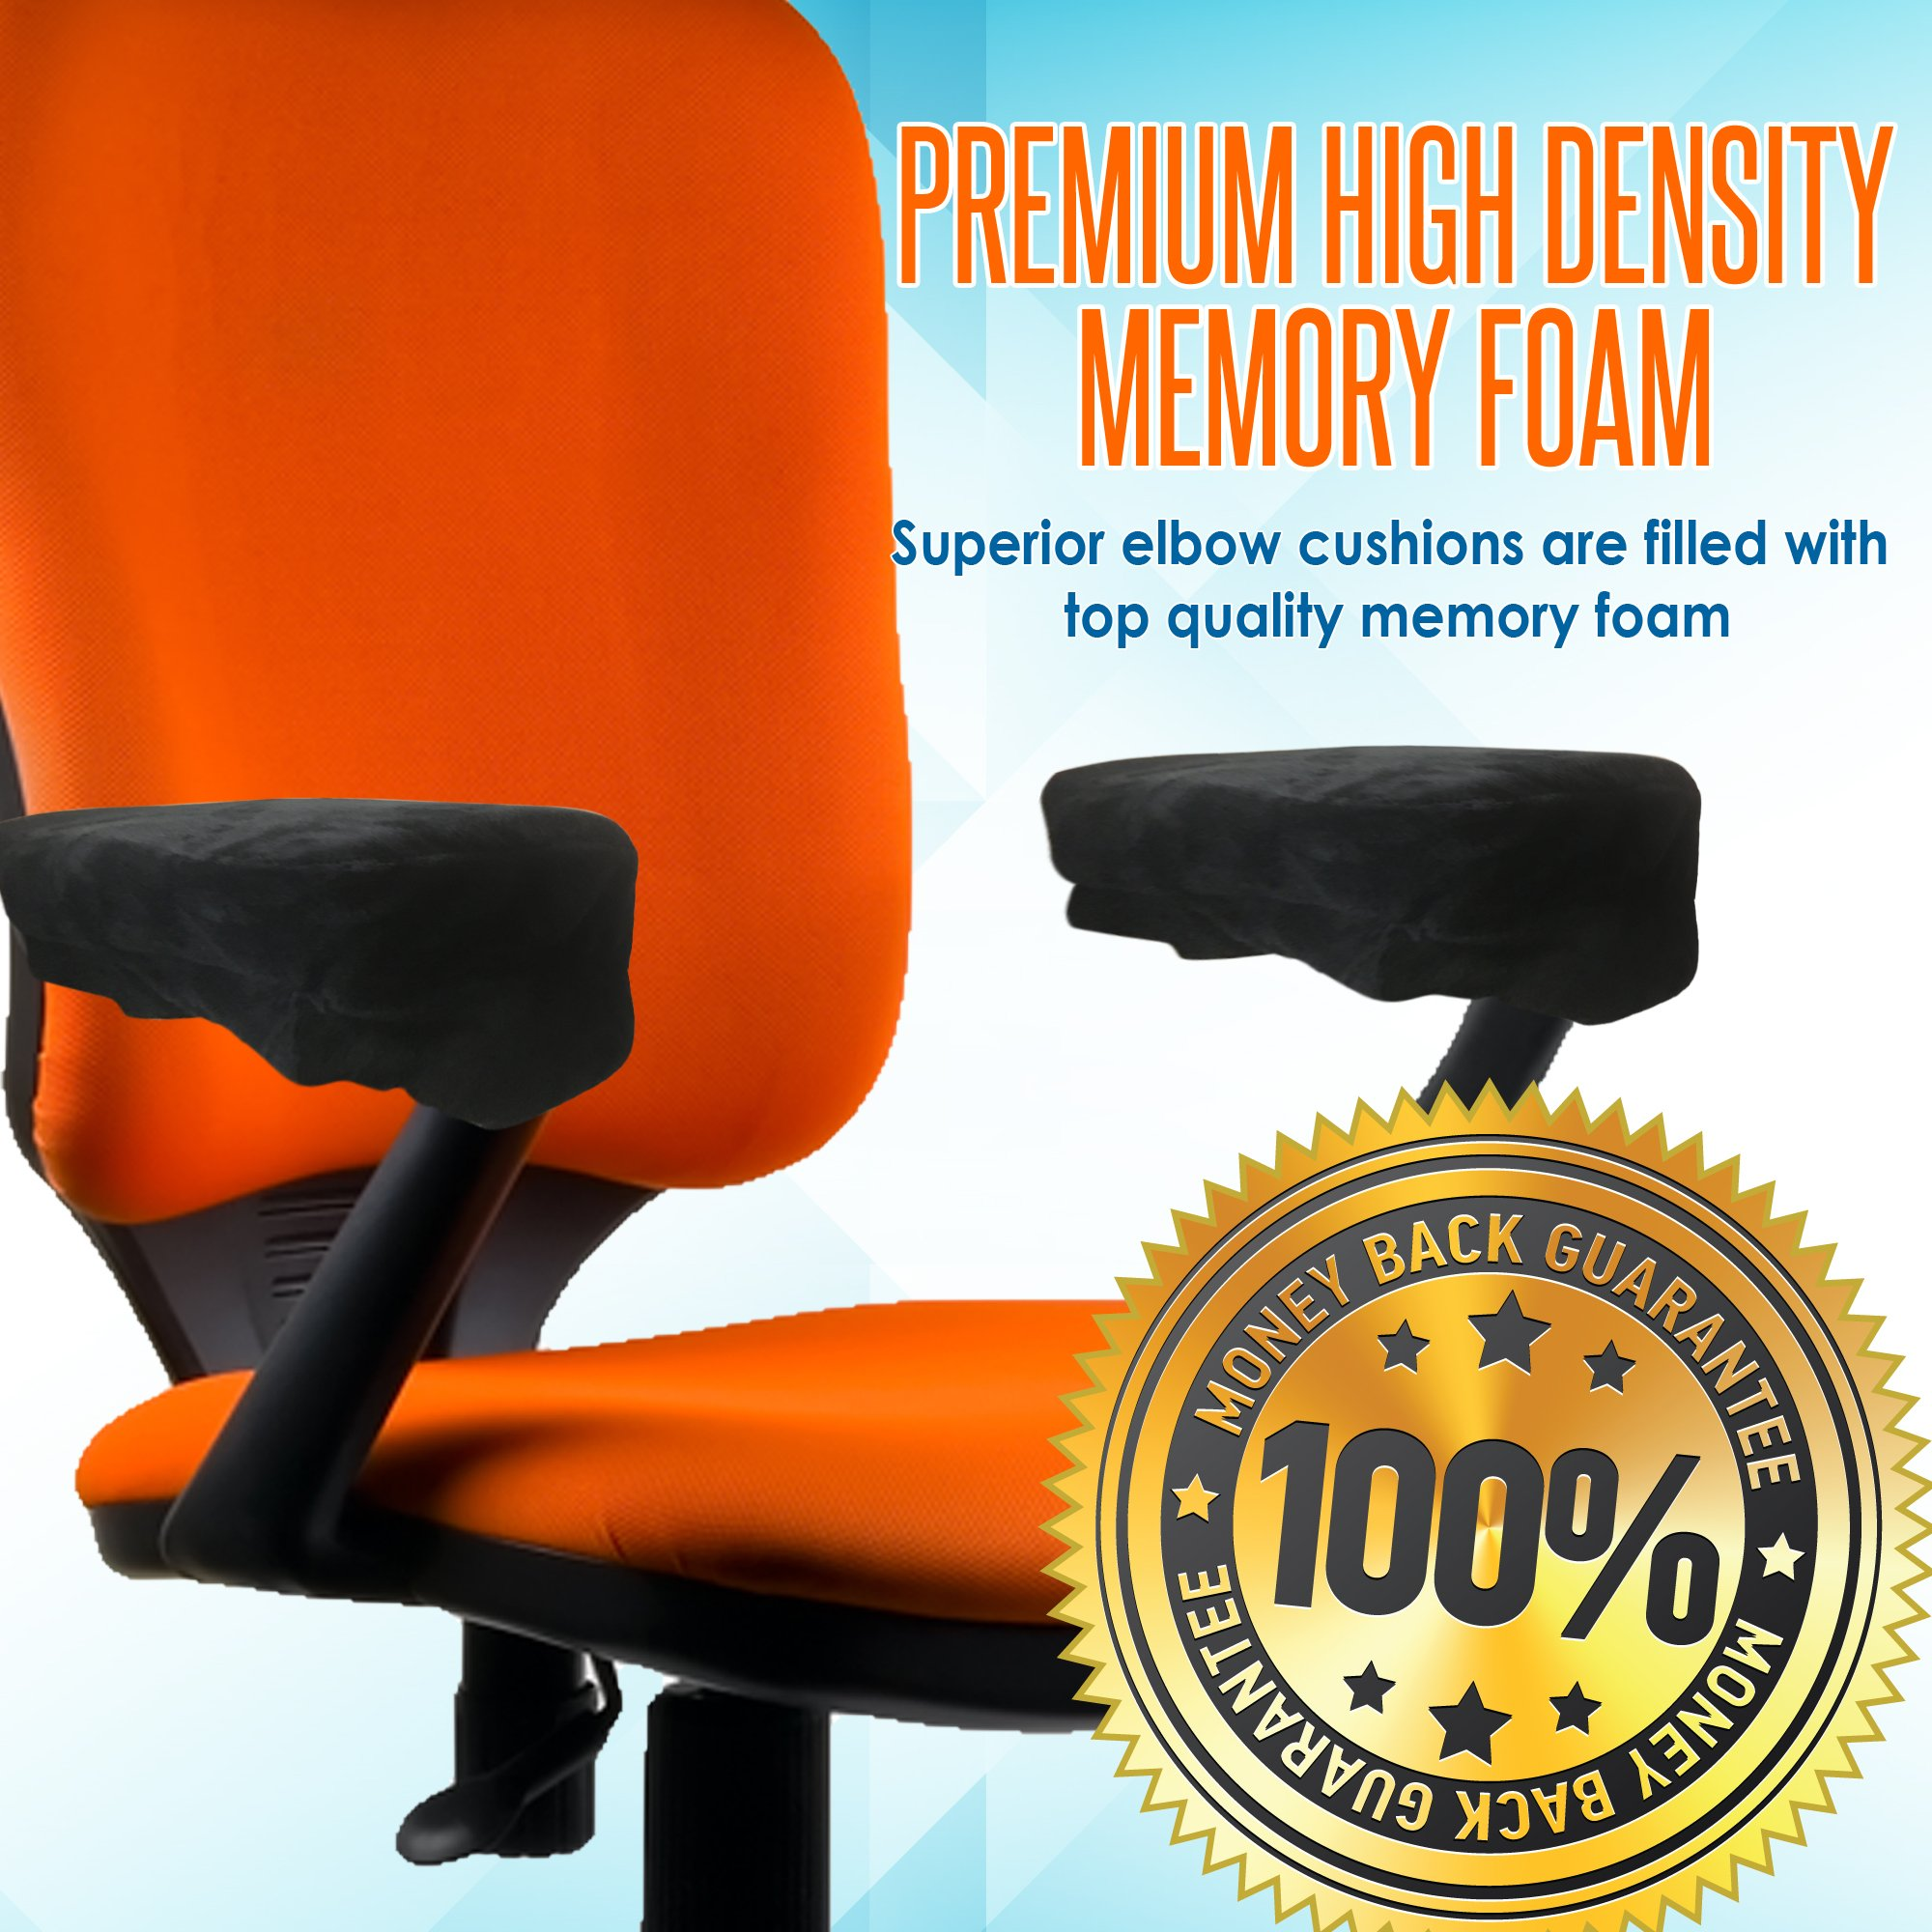 Memory Foam Arm Chair Pads for Home and Office - Perfect Density Cushions - Premium Quality - Washable Covers - Therapeutic Armrest Support - Extra Thick - Elbow & Relief - Universal Fit (Set of 2) by Grand House (Image #3)